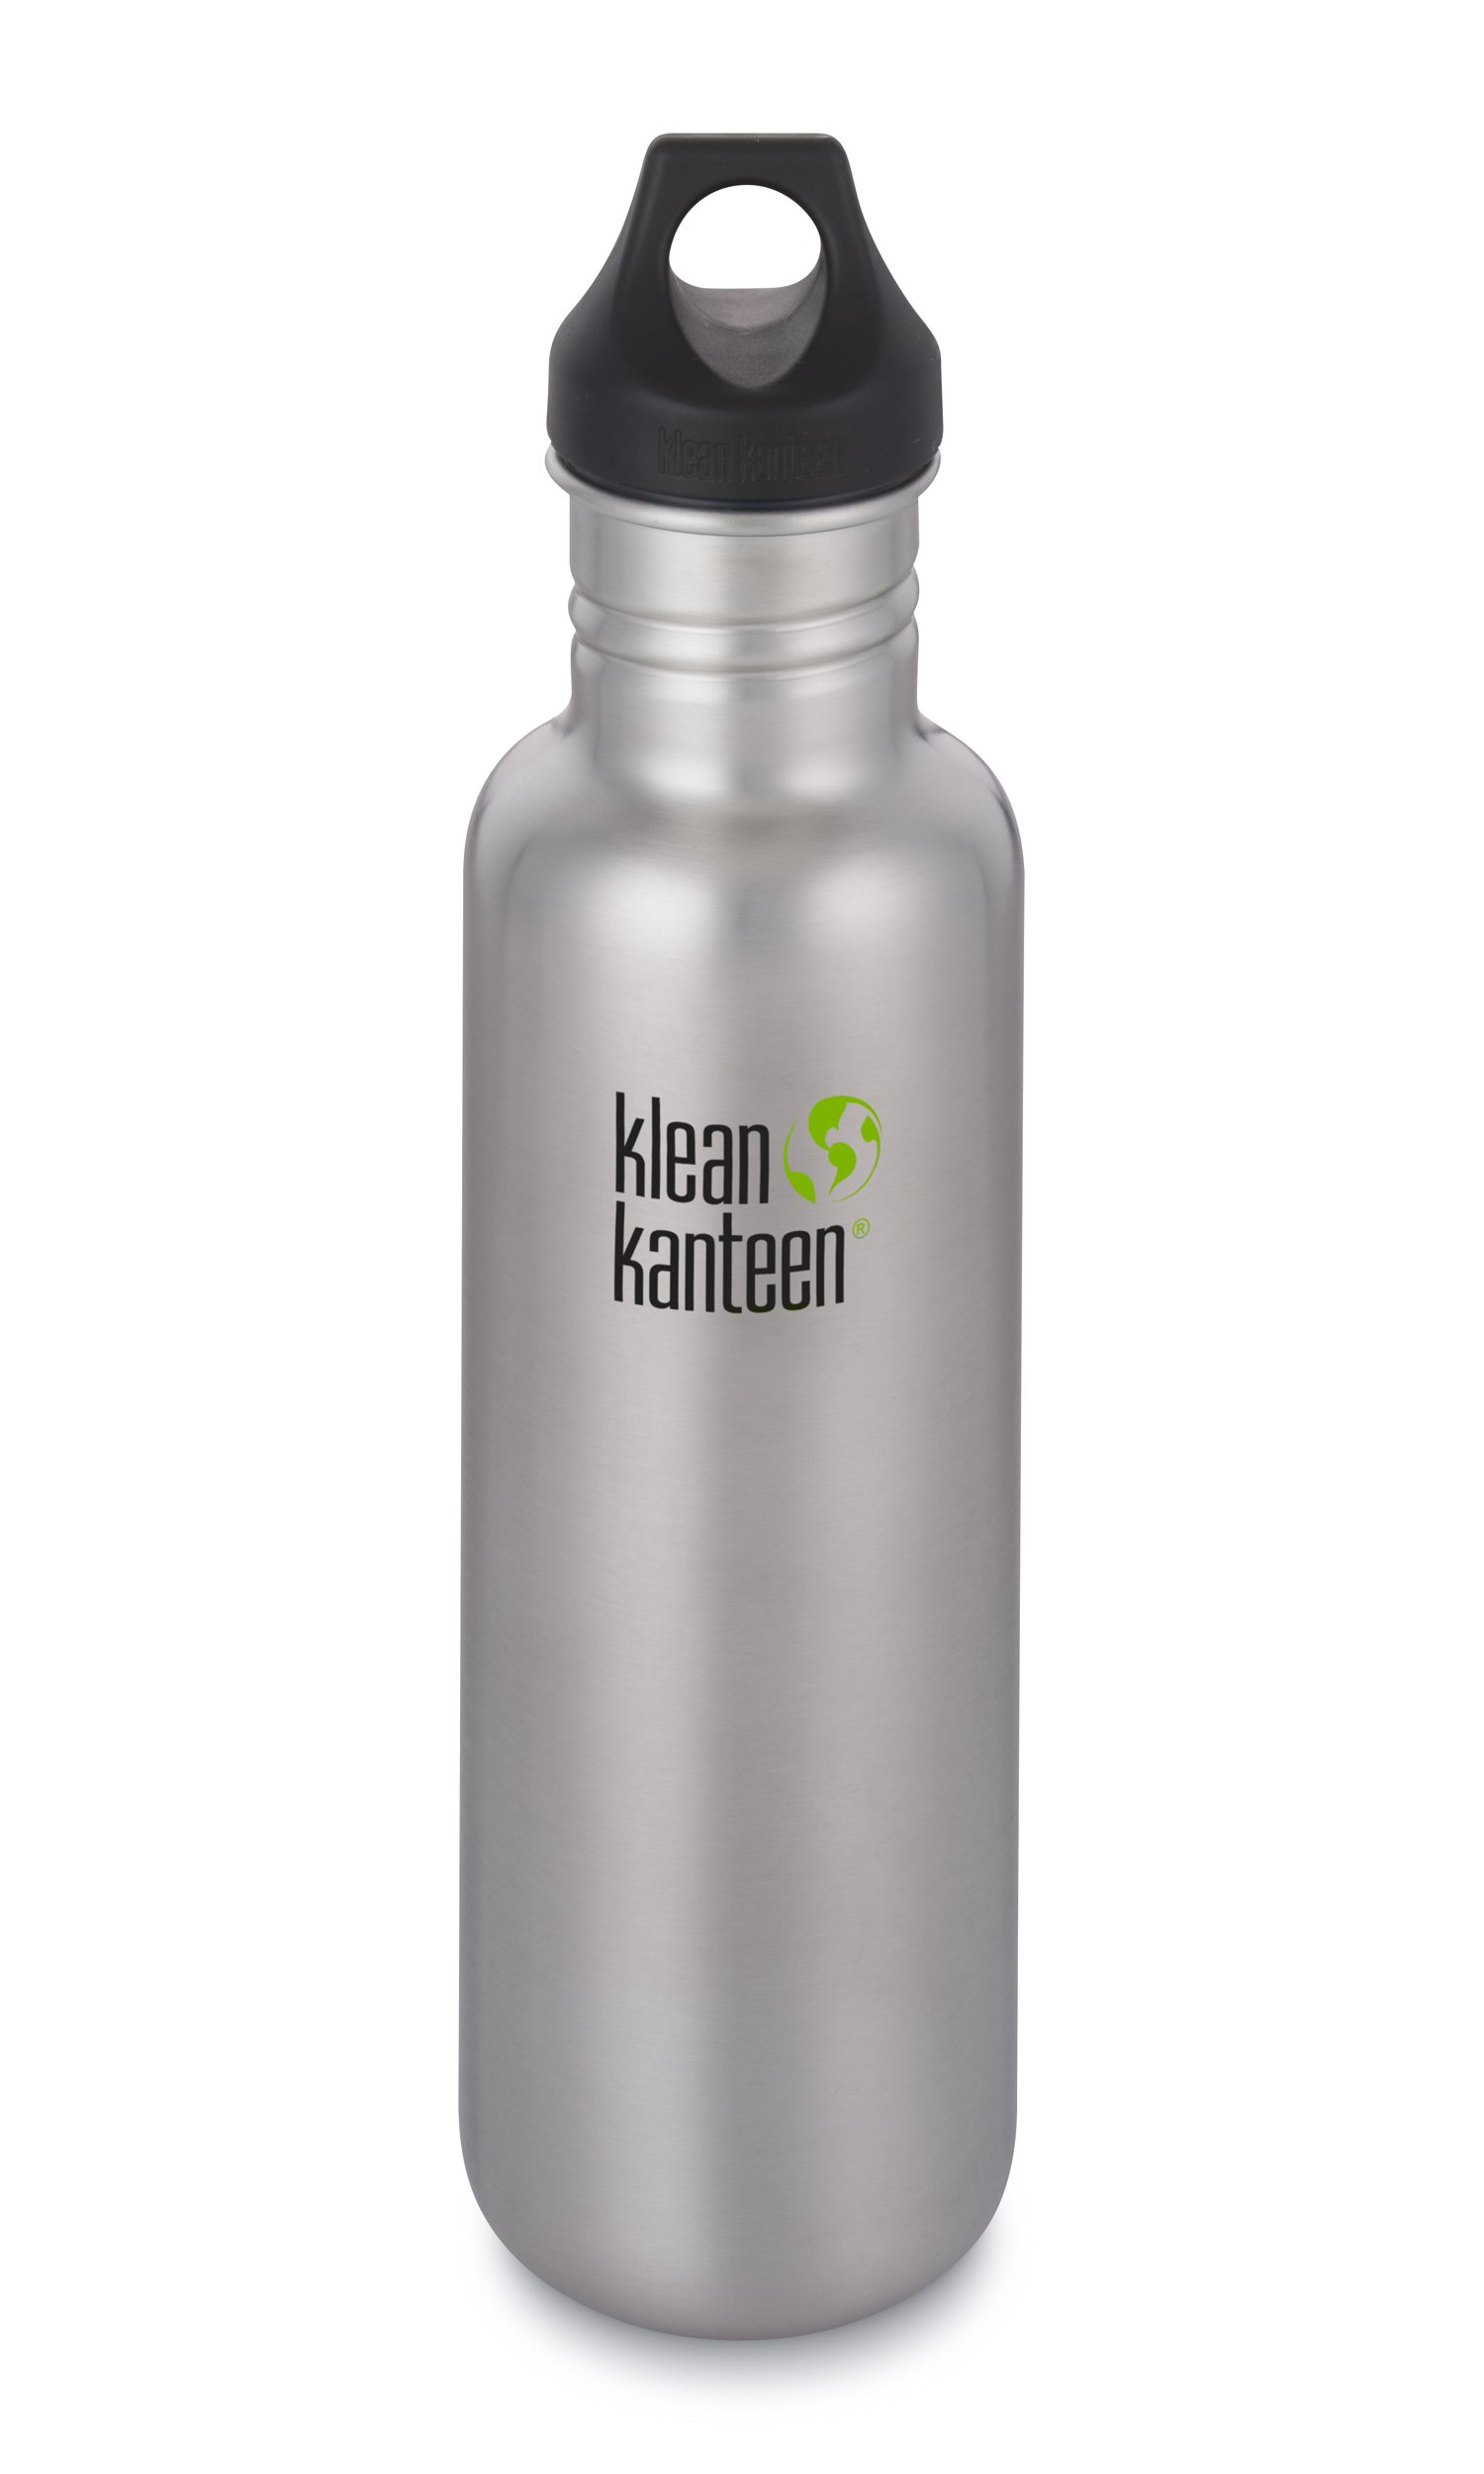 Klean Kanteen 27oz Classic Stainless Steel Water Bottle Single Wall with Leak Proof Loop Cap - Brushed Stainless (NEW 2018)